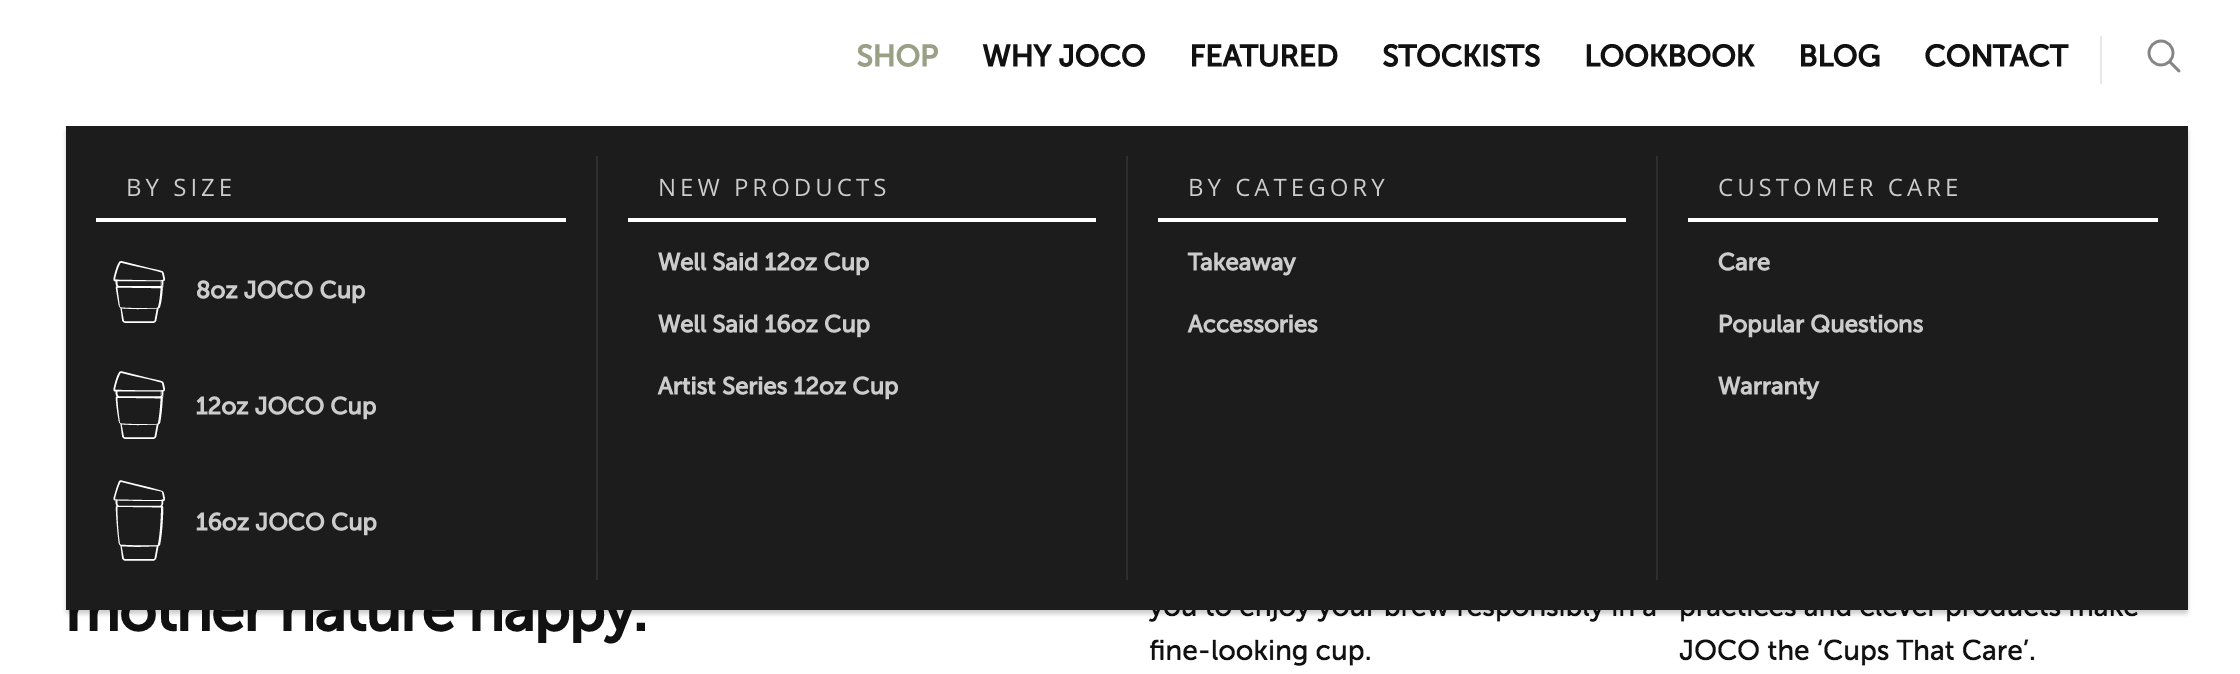 Just a few items in your store? Link to them directly from your menu -- it'll save shoppers time.